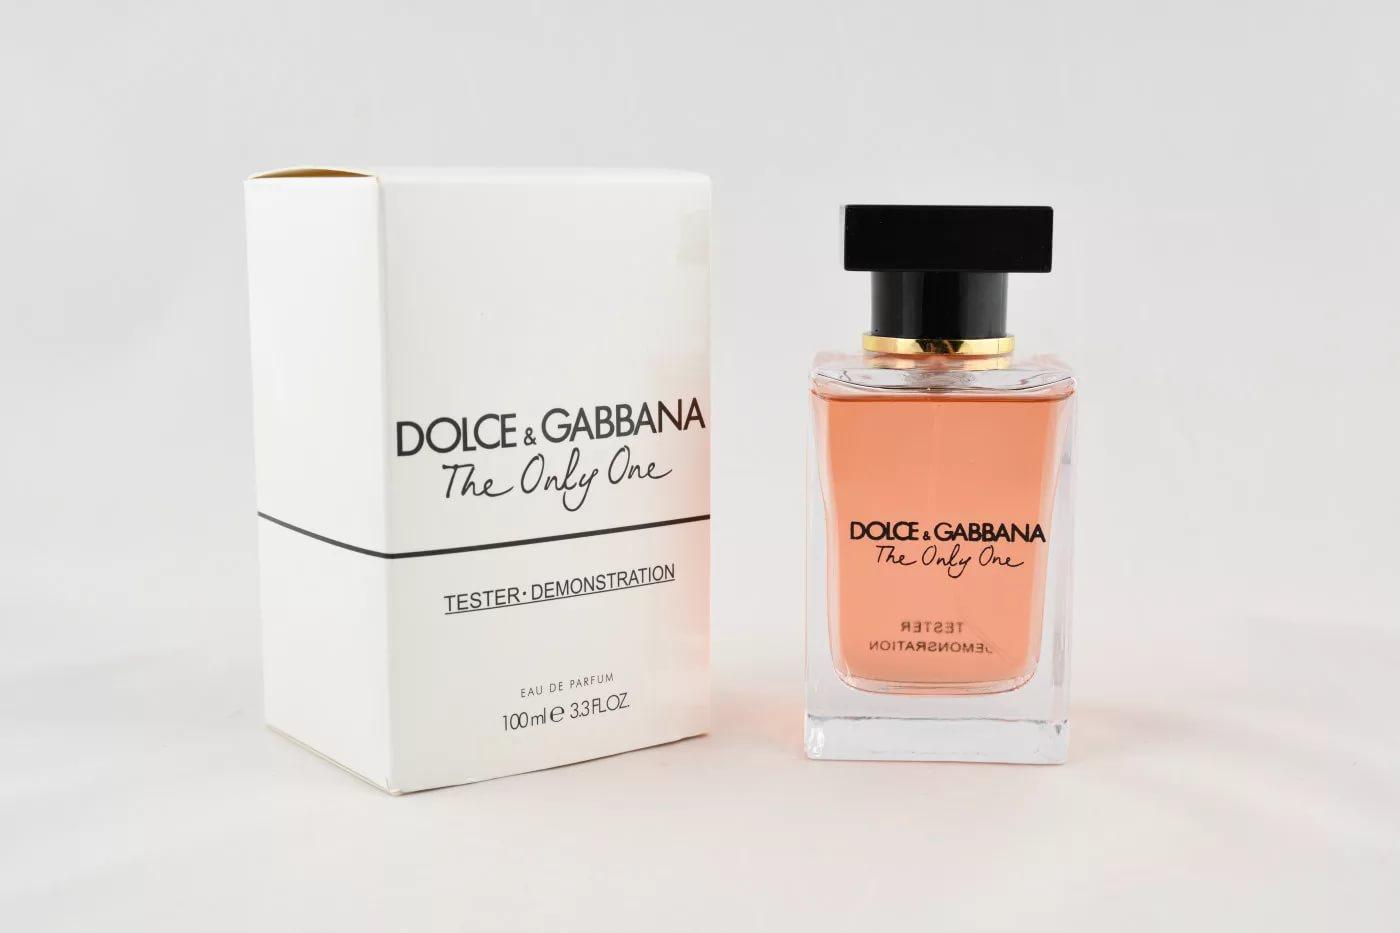 DOLCE & GABBANA THE ONLY ONE 100ML EDP WOMEN TESTER